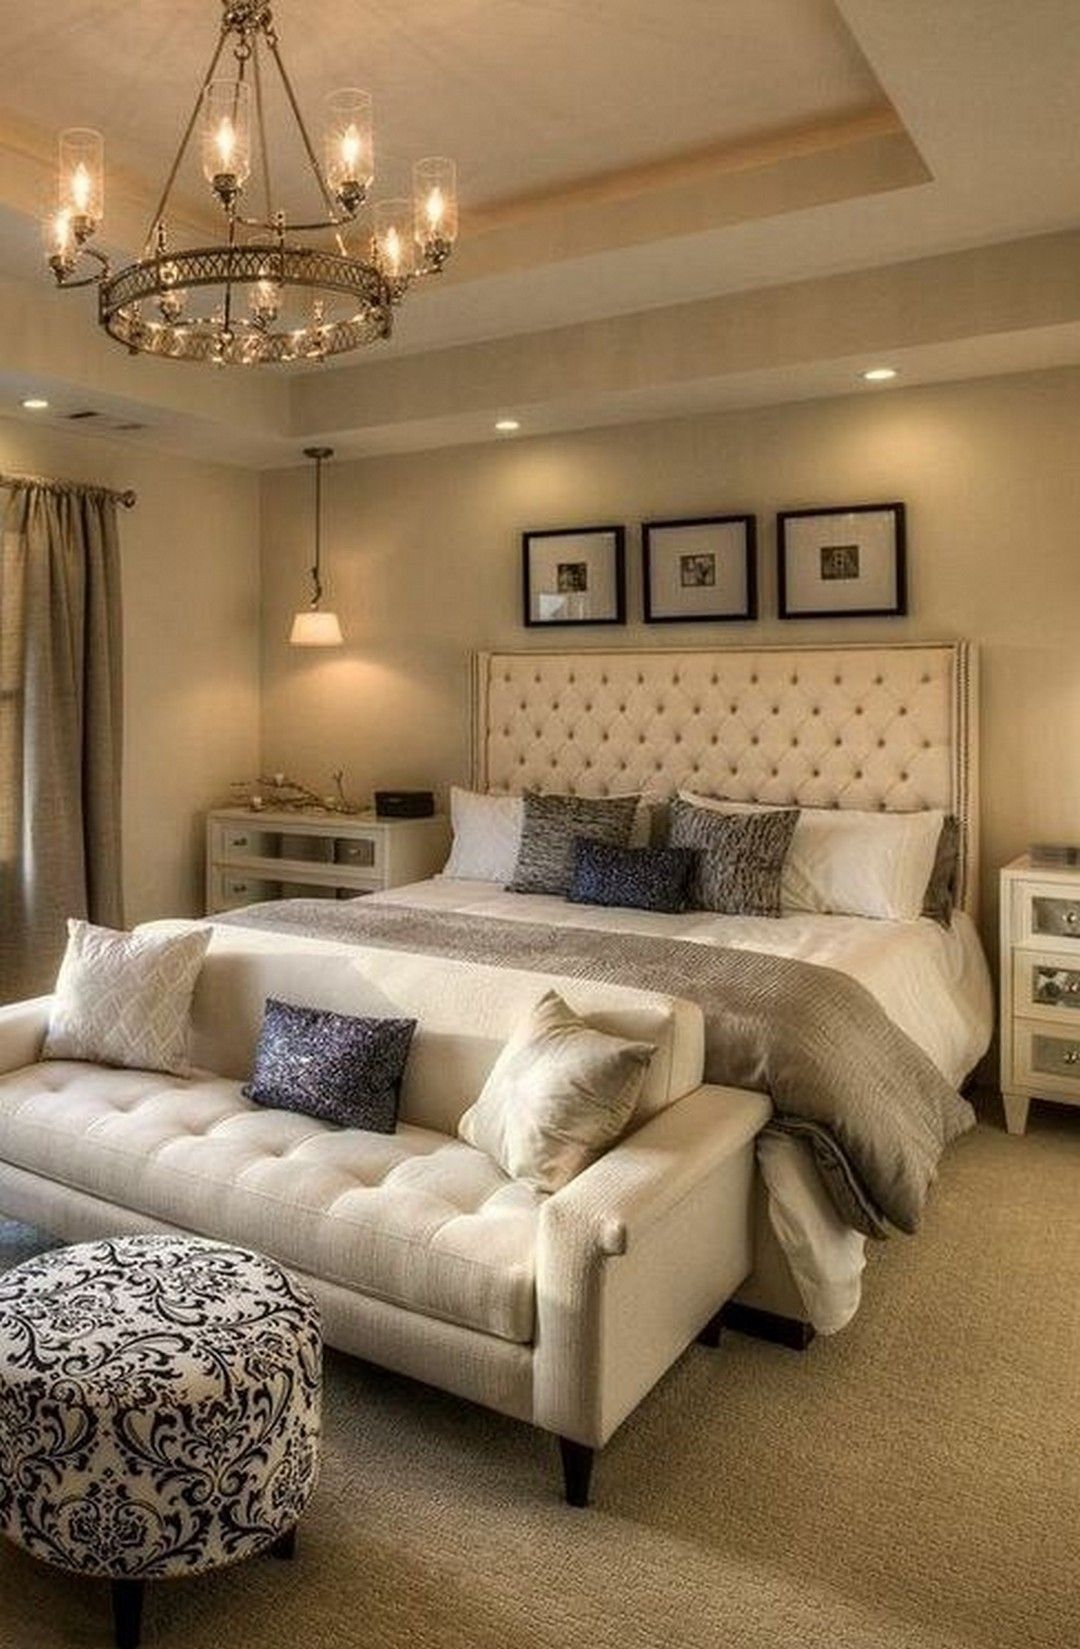 10 Great Ideas Of Traditional Bedroom Home Decors To Copy In Your